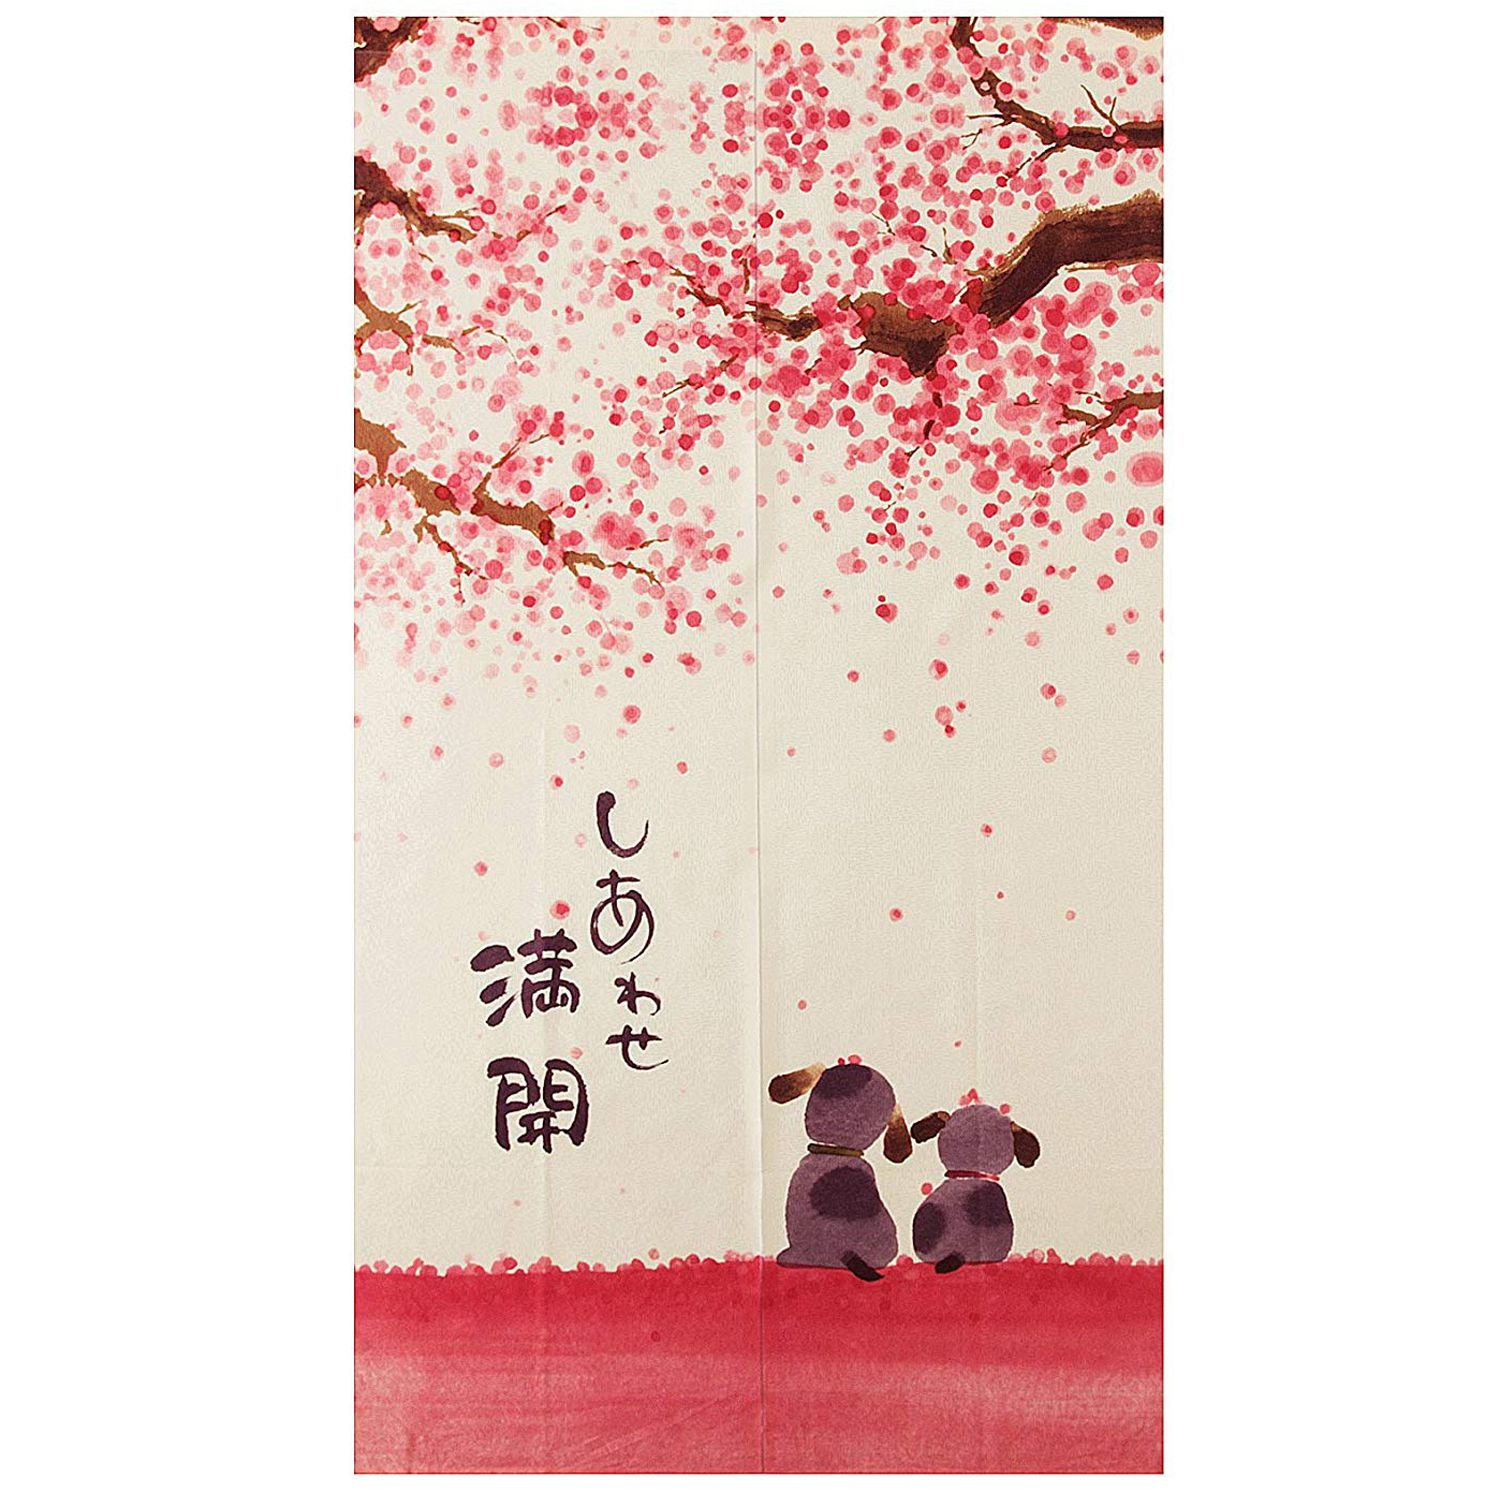 Japanese Style Doorway Curtain 85X150Cm Happy Dogs Cherry Blossom CNIM Hot